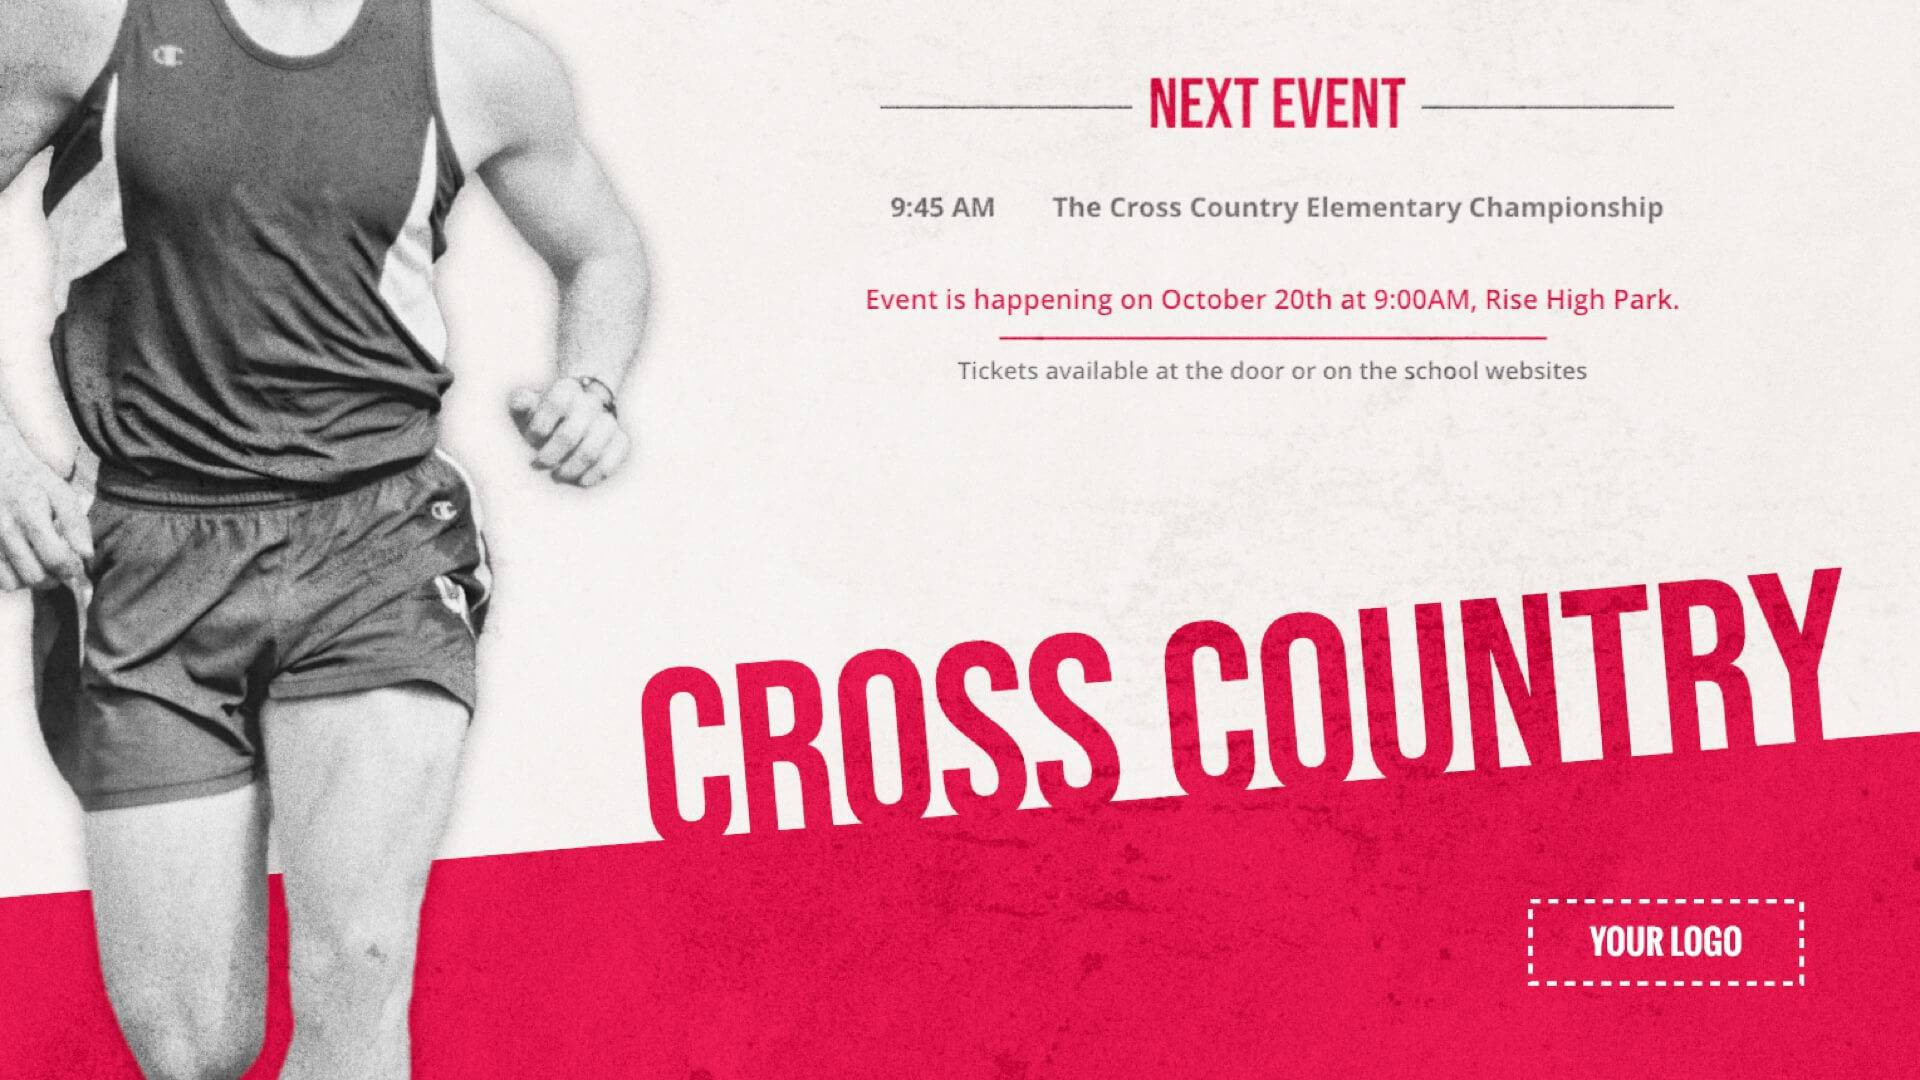 Cross Country - Sports Digital Signage Template